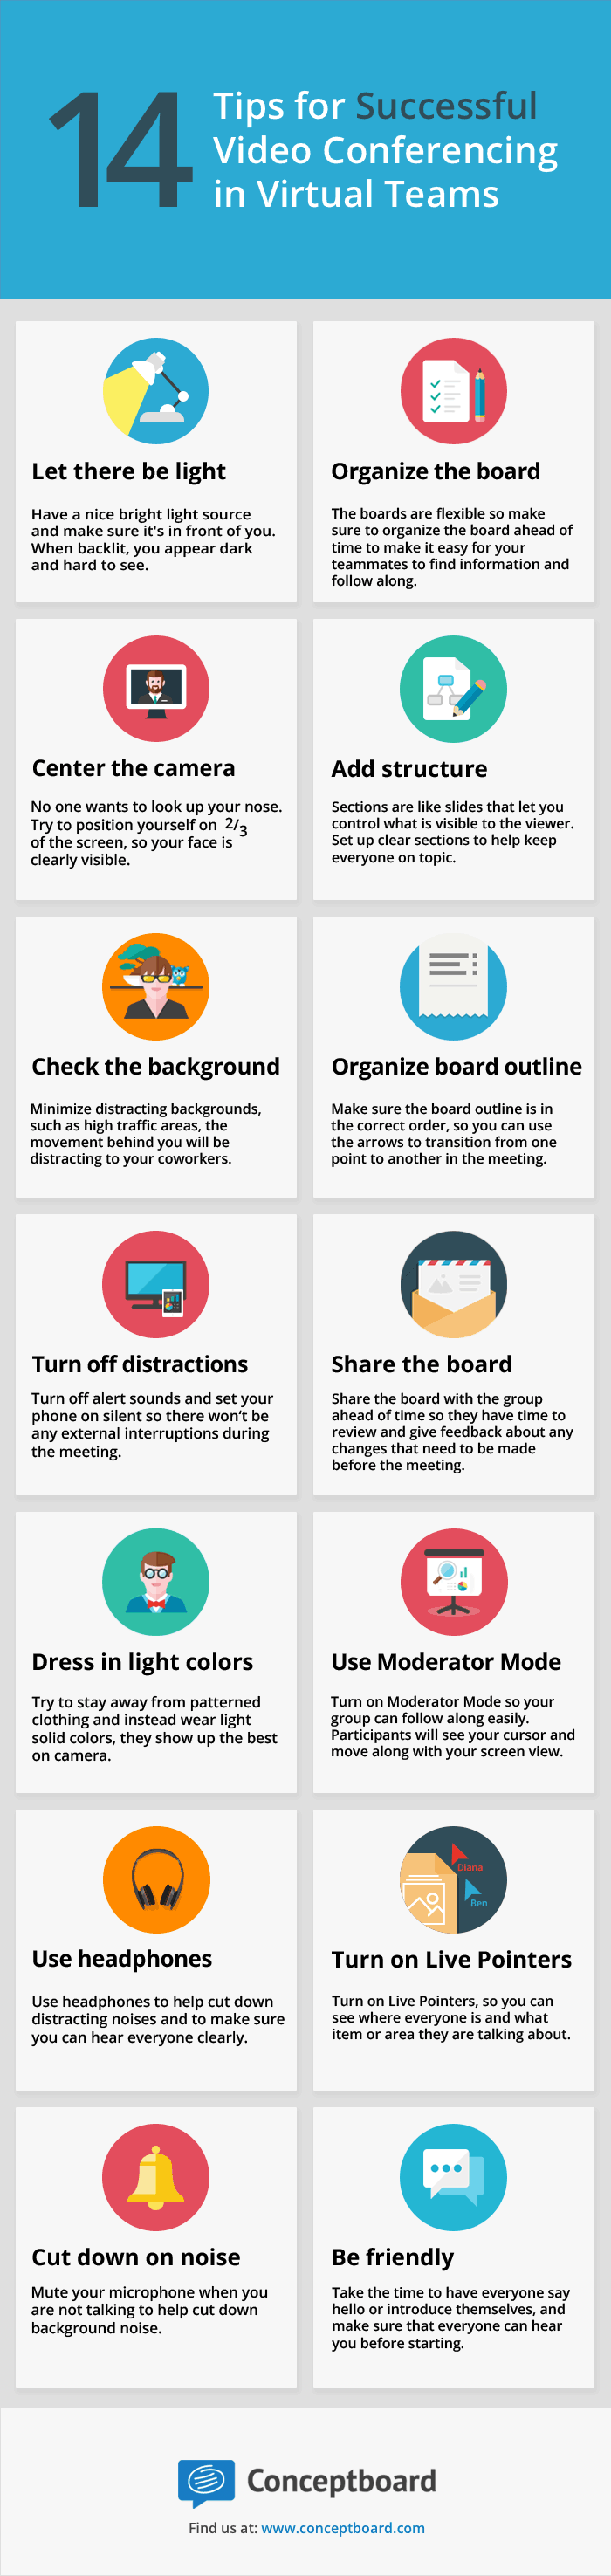 Infographic with 14 tips for Successful Video Conferencing in Remote Teams by Conceptboard